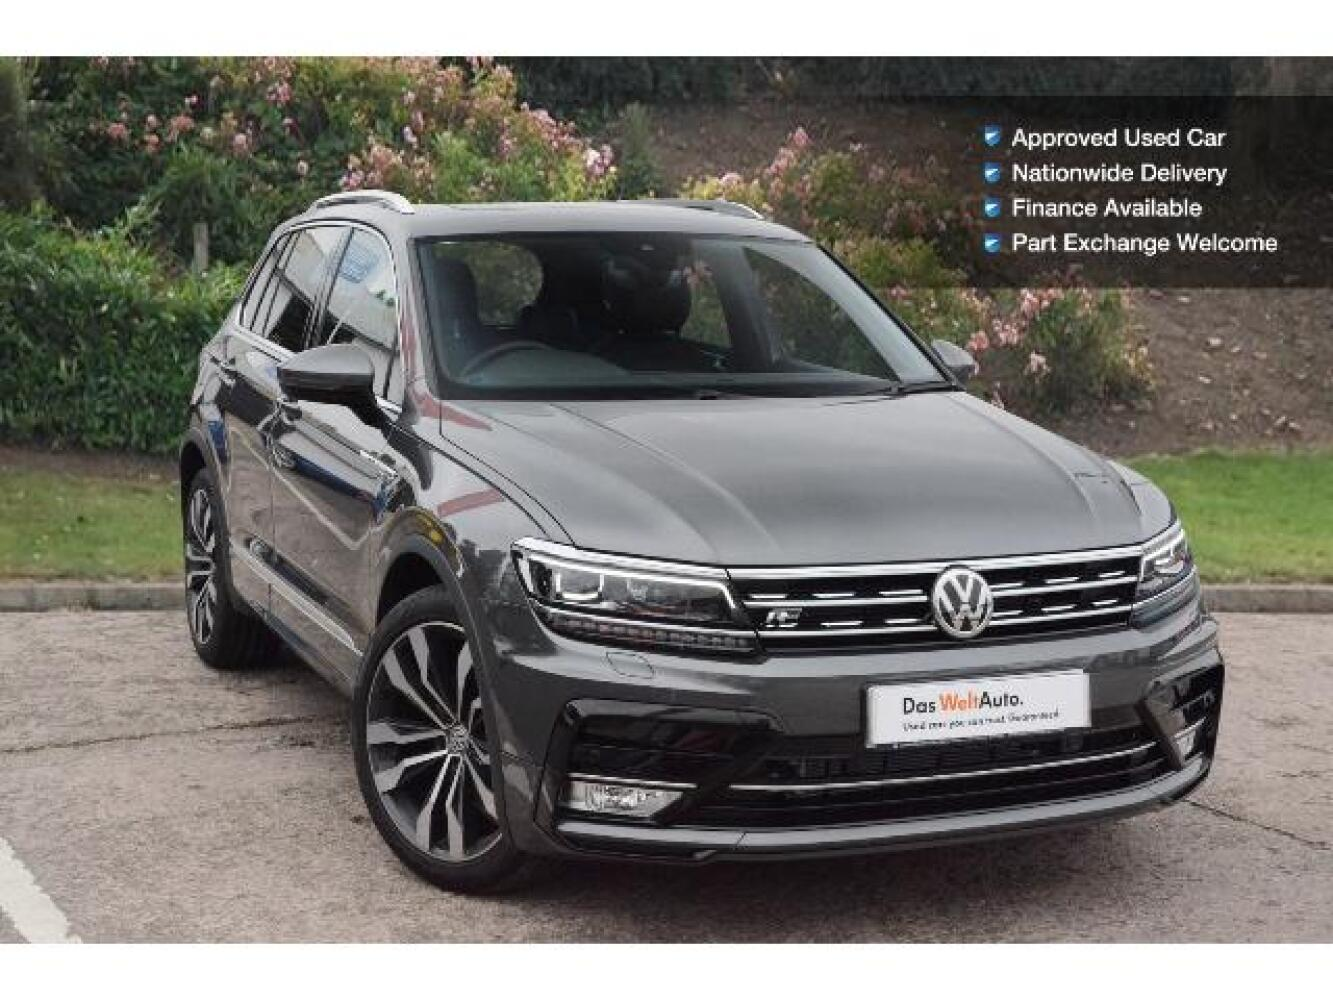 used volkswagen tiguan 2 0 tdi bmt 150 4motion r line 5dr diesel estate for sale newcastle. Black Bedroom Furniture Sets. Home Design Ideas